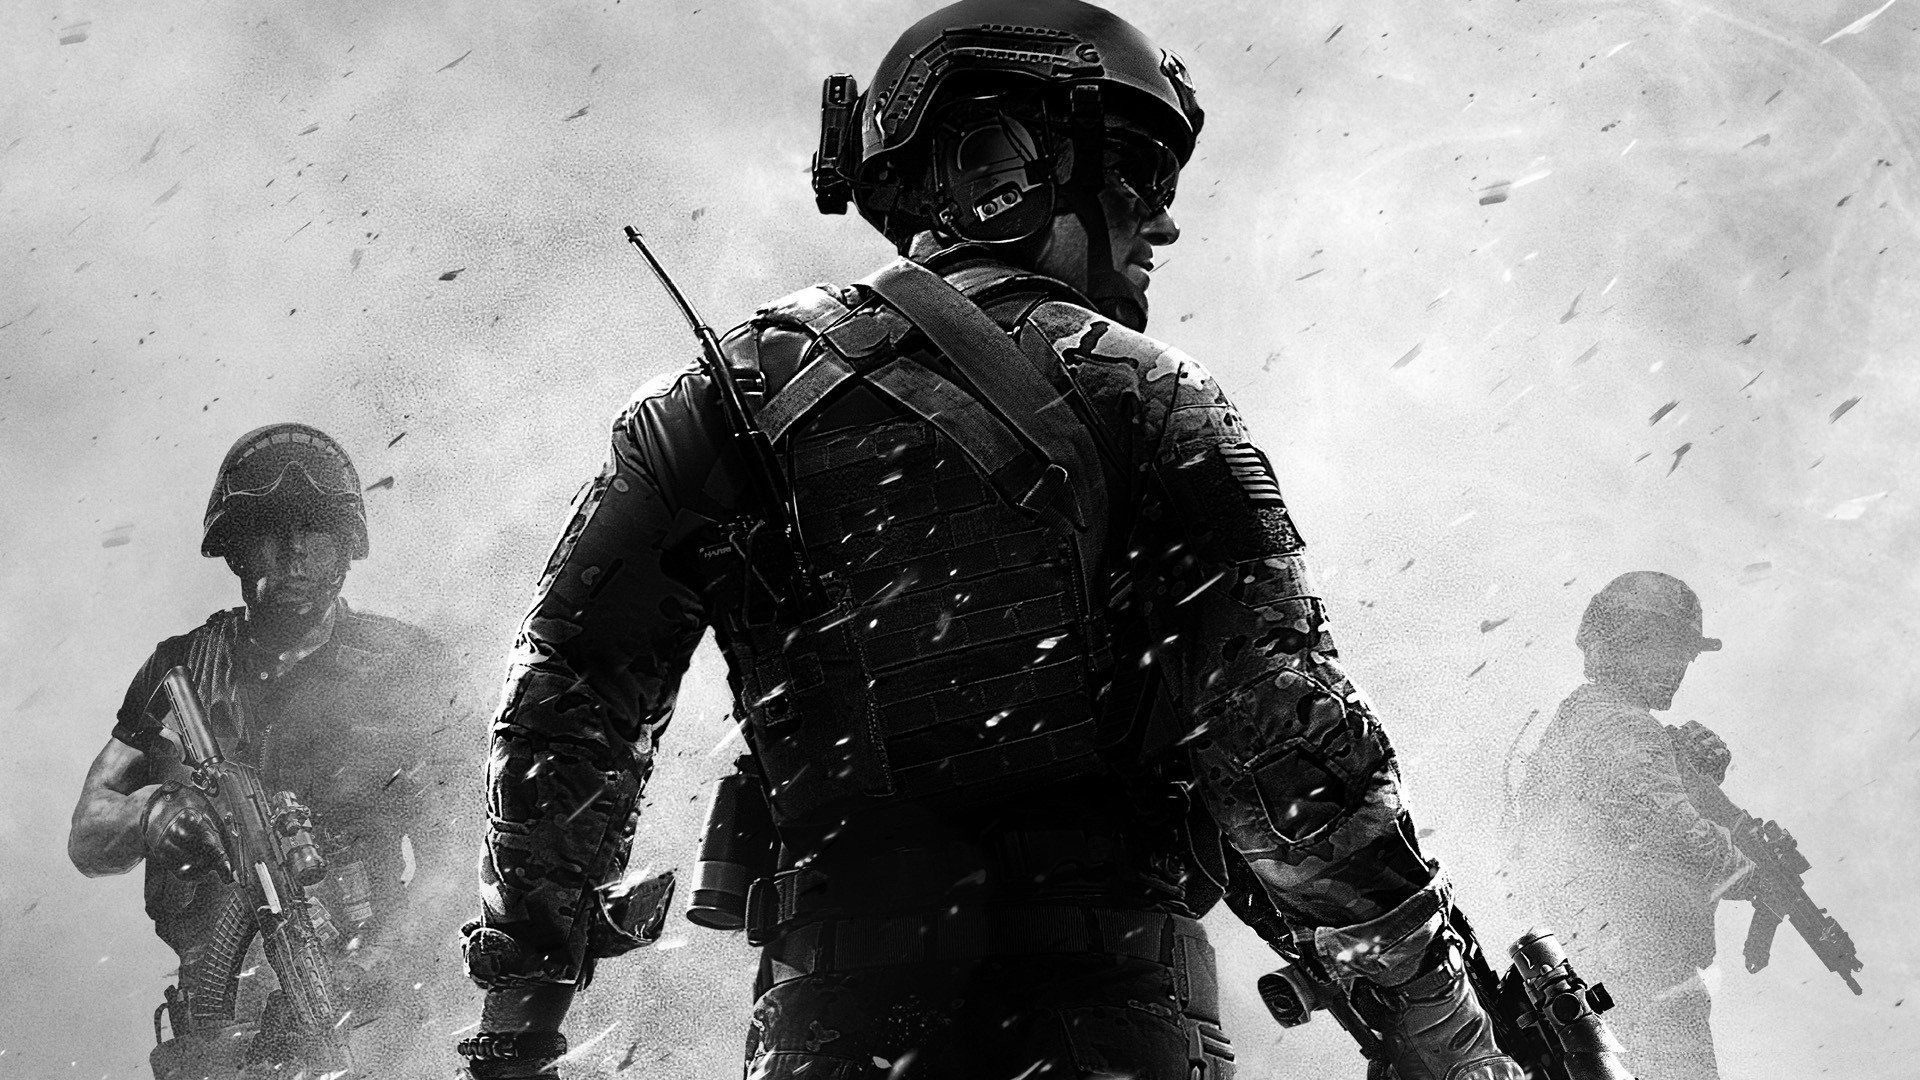 1920x1080 Call of Duty HD Wallpaper | Background Image | 1920x1080 | ID:328413 ...